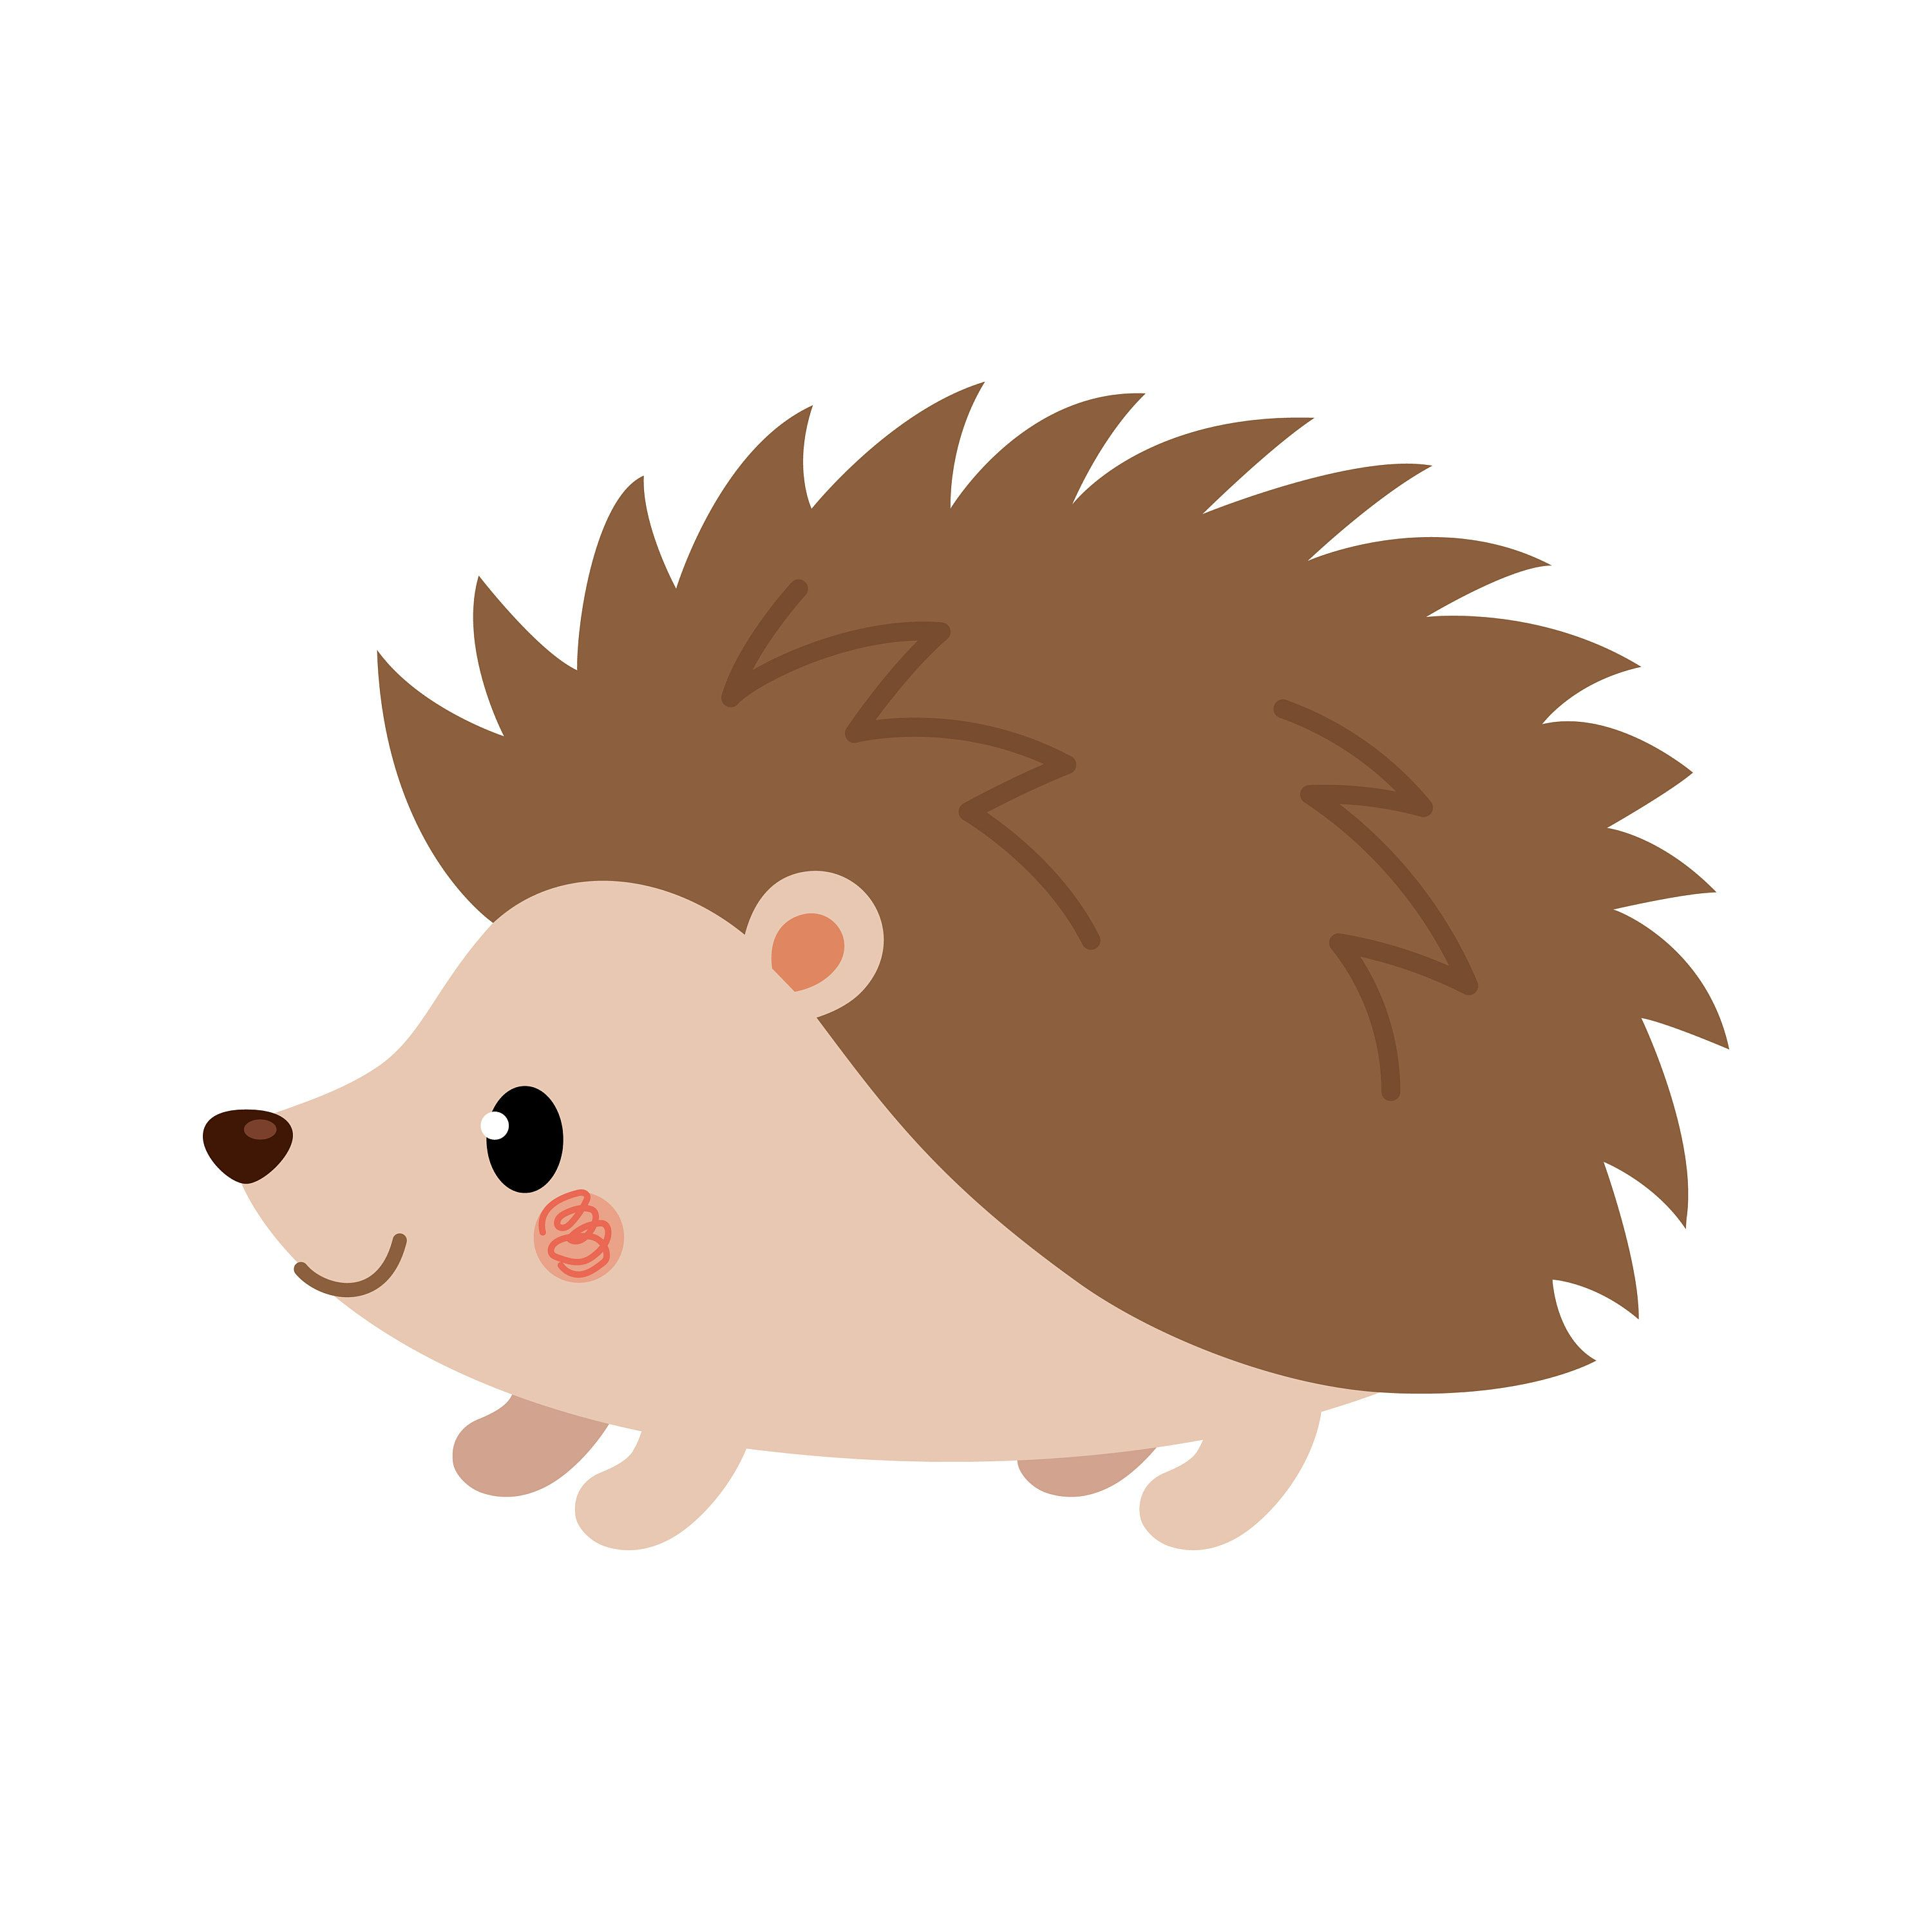 You Searched For Smallworldclipart Discover The Unique Items That Smallworldclipart Creates At Etsy We Pride Our Hedgehog Illustration Hedgehog Baby Quilts